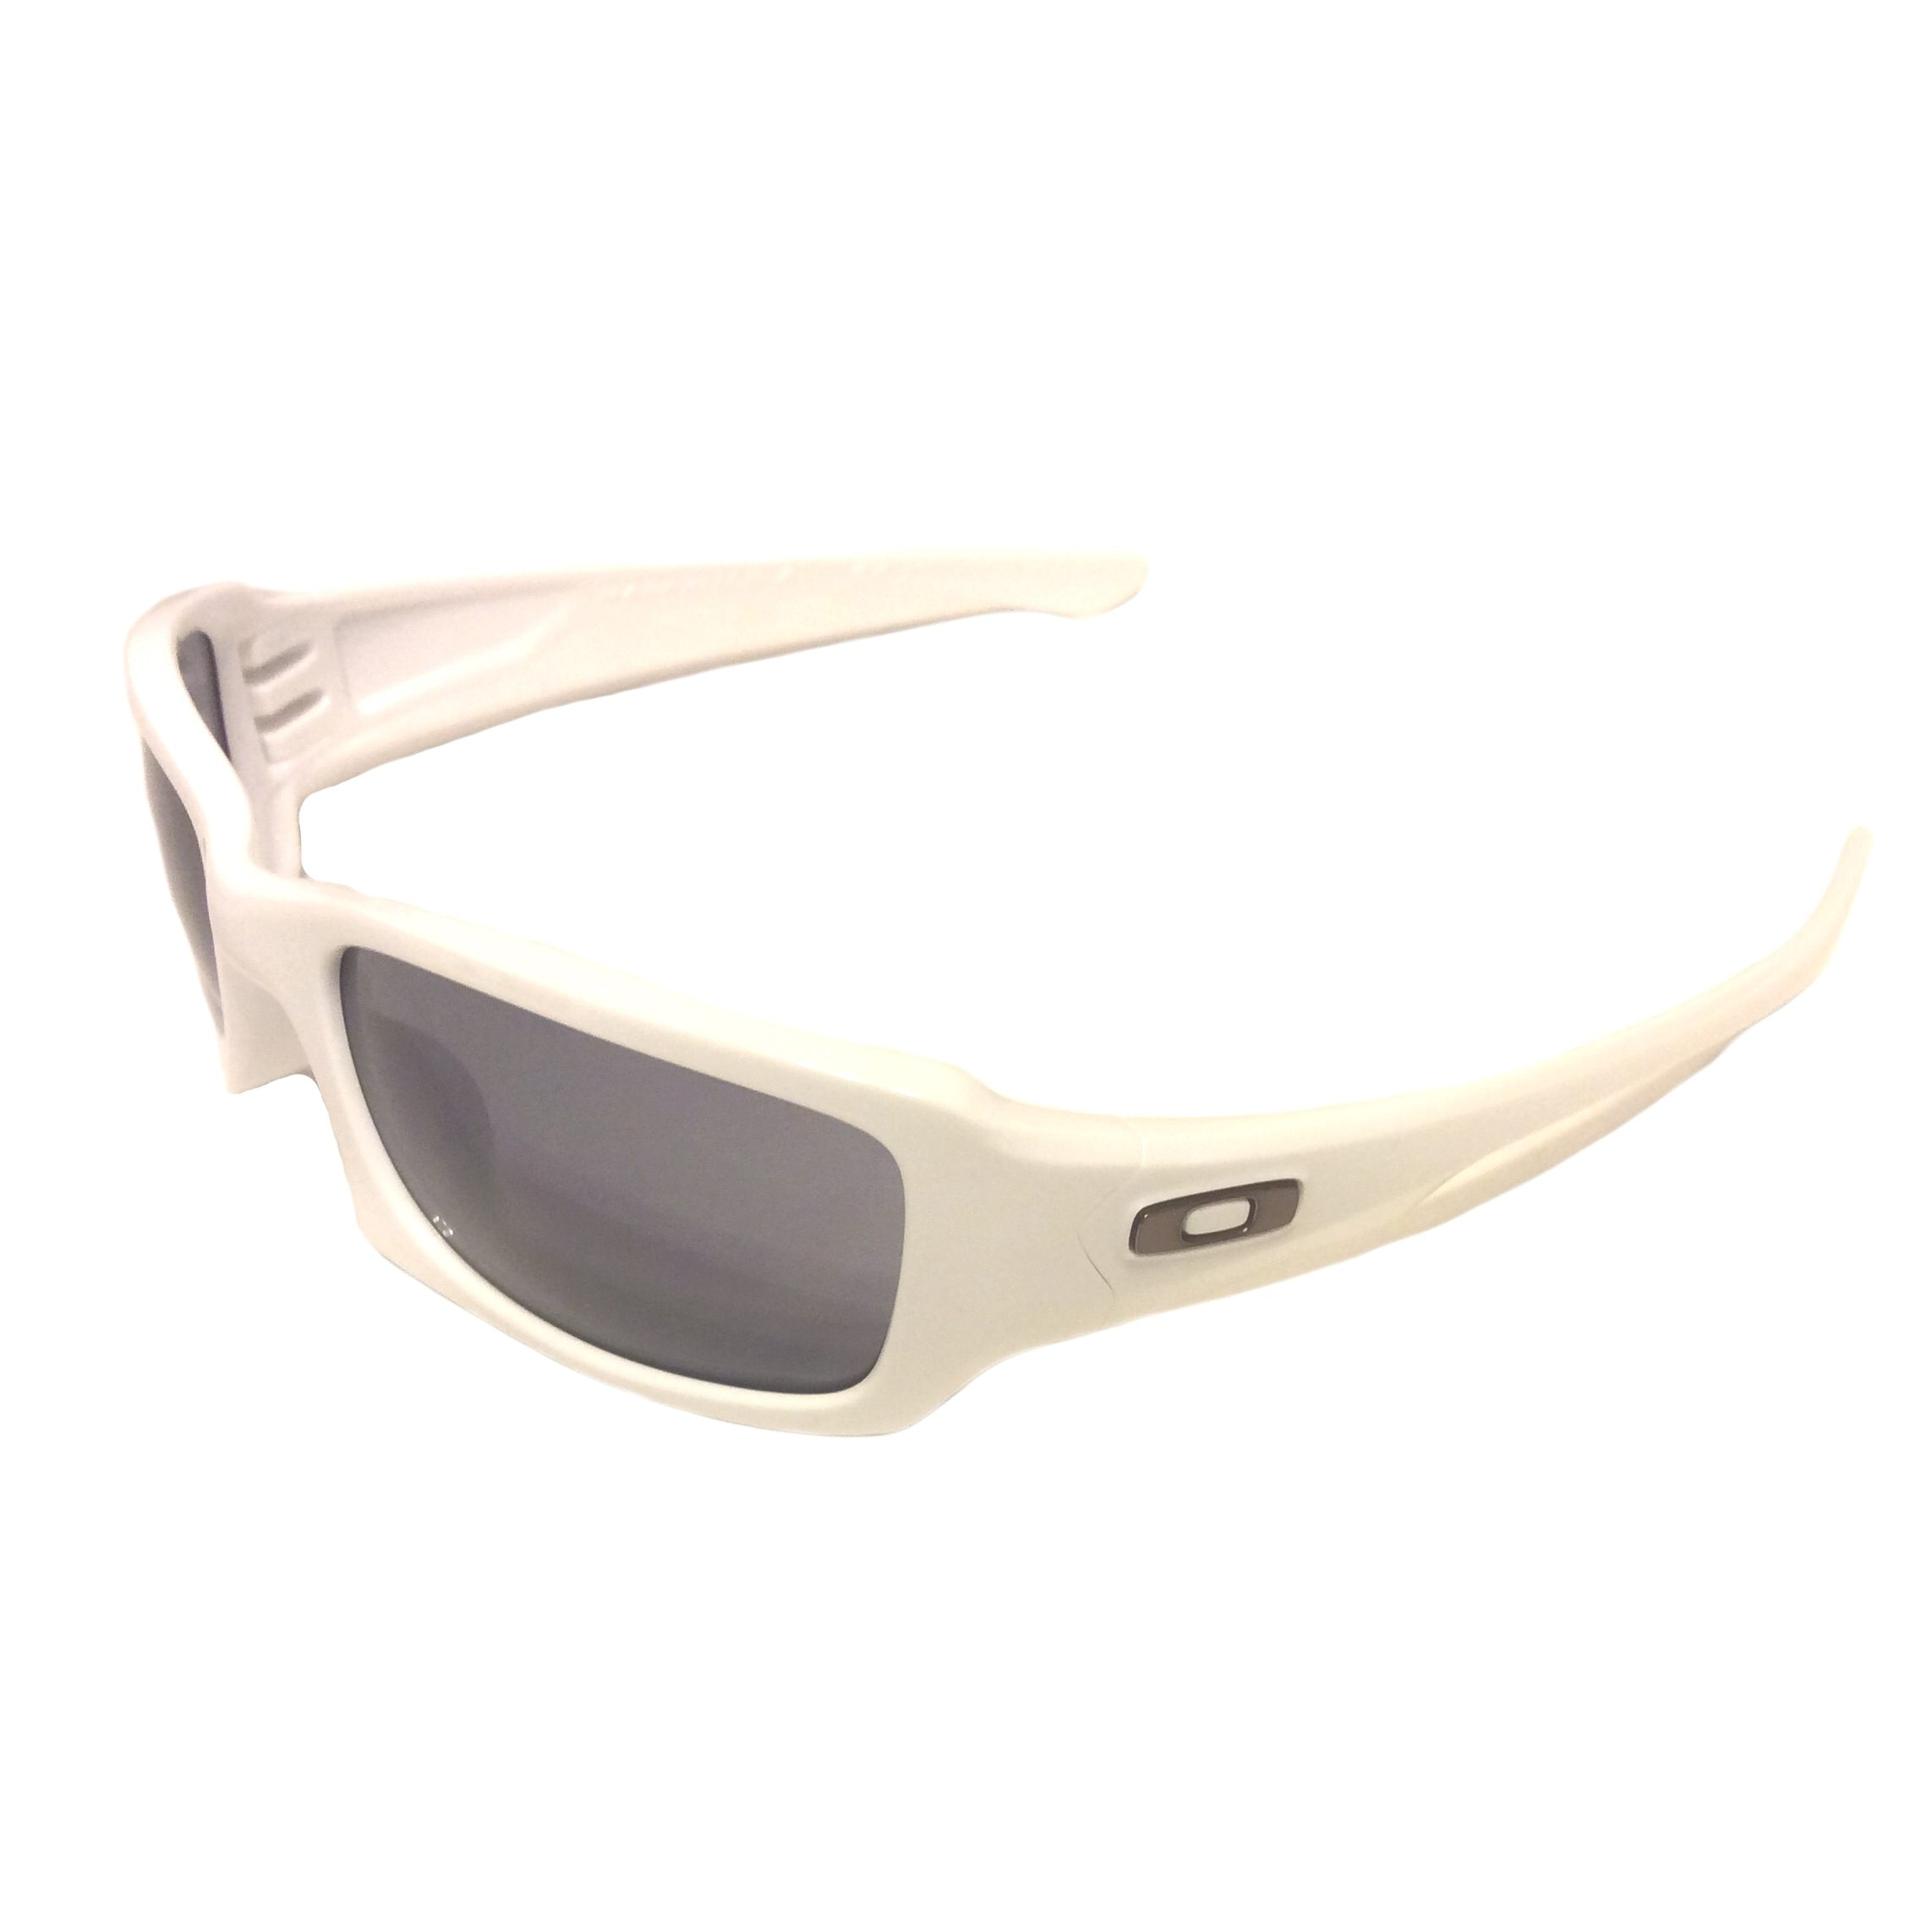 oakley fives squared sunglasses asian fit  oakley fives squared sunglasses (a) mph asian polished white gray oo9214 08